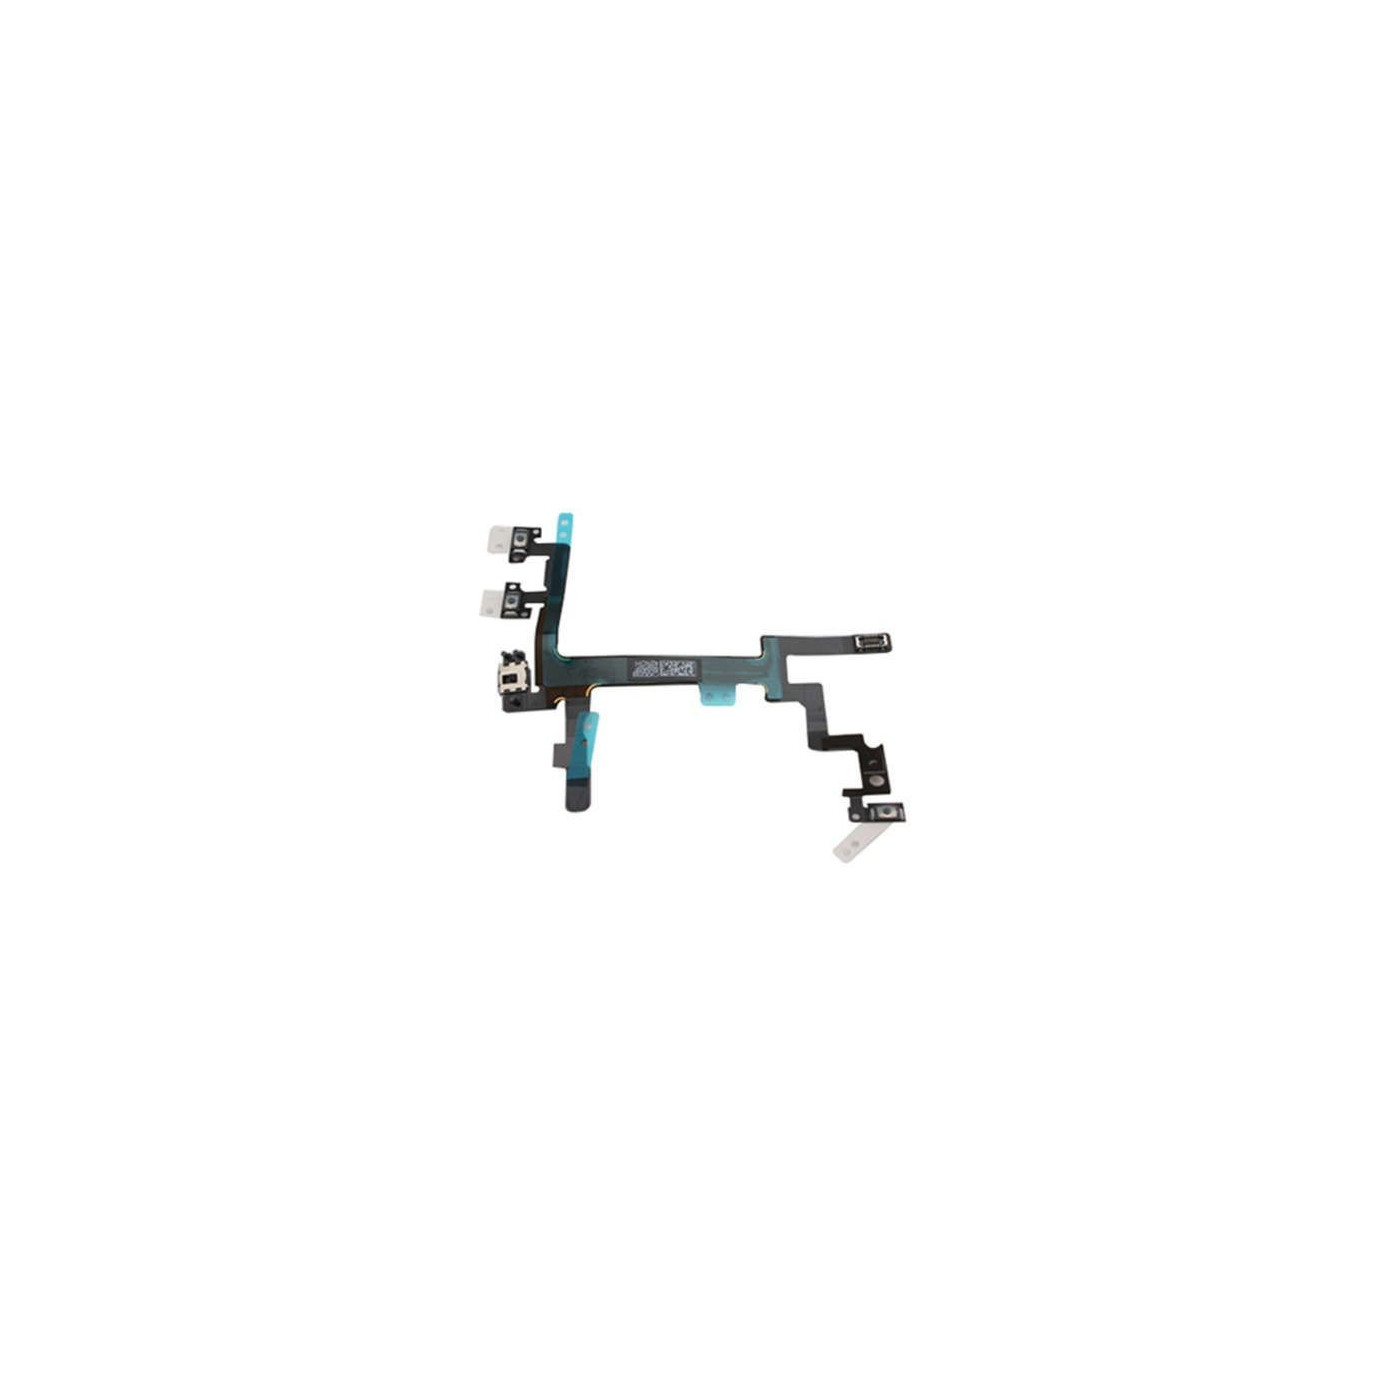 Boutons de volume muet d'alimentation pour apple iphone 5 bouton interrupteur bouton câble flexible